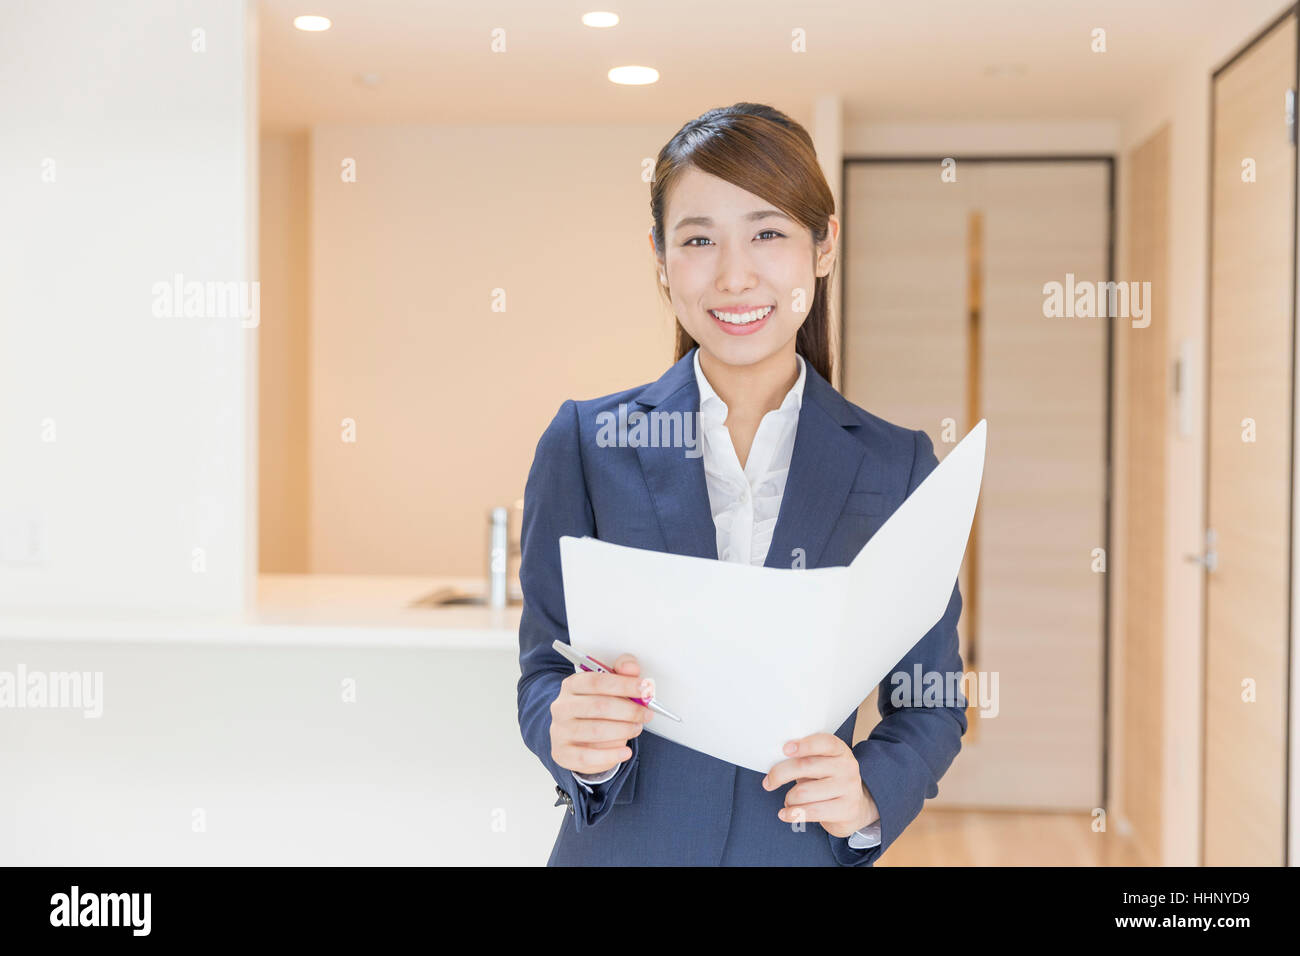 Woman Smiling to the Camera with Floor Plan - Stock Image